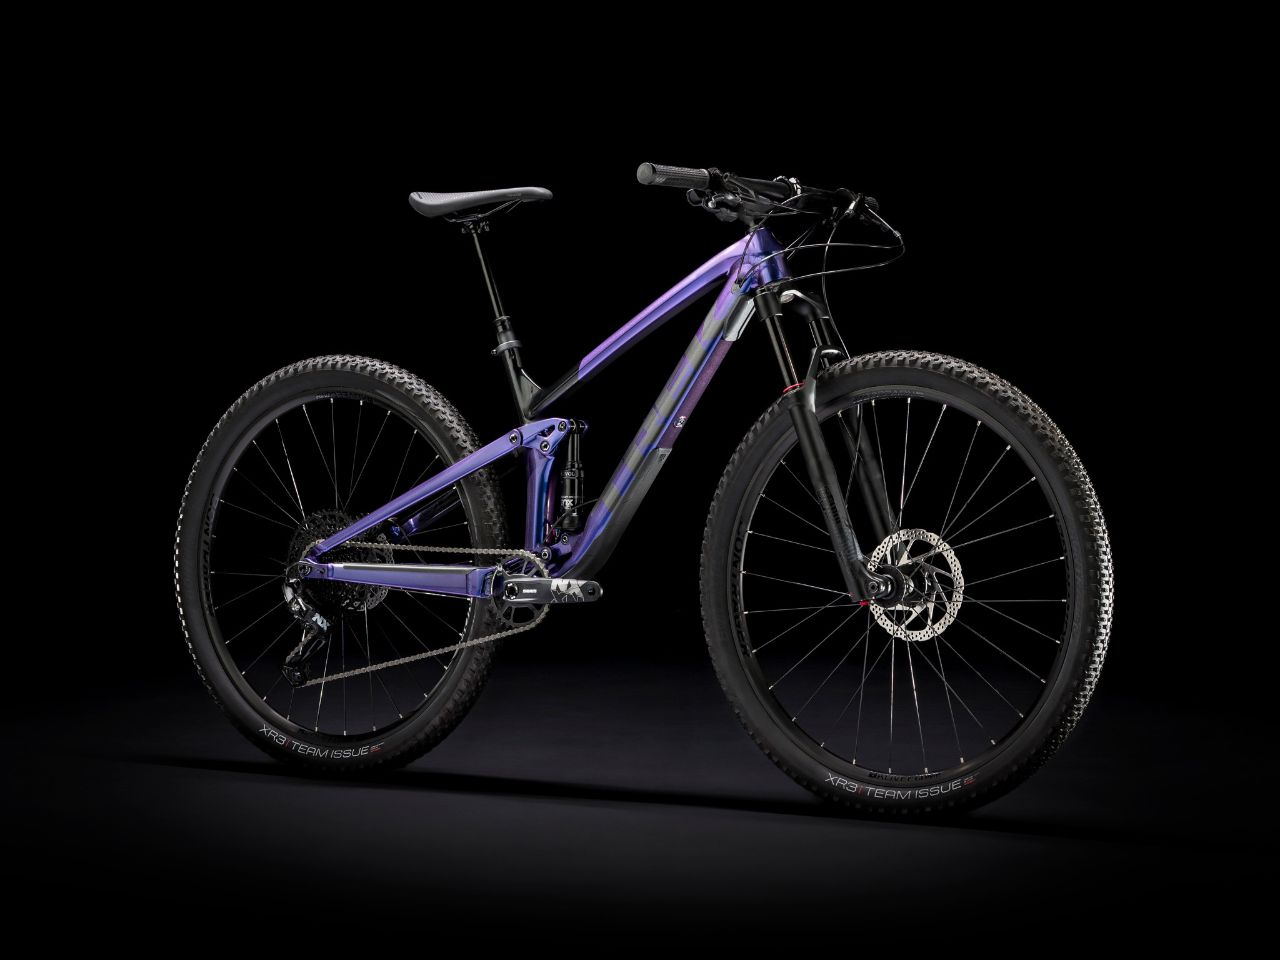 News - NUOVA TREK TOP FUEL